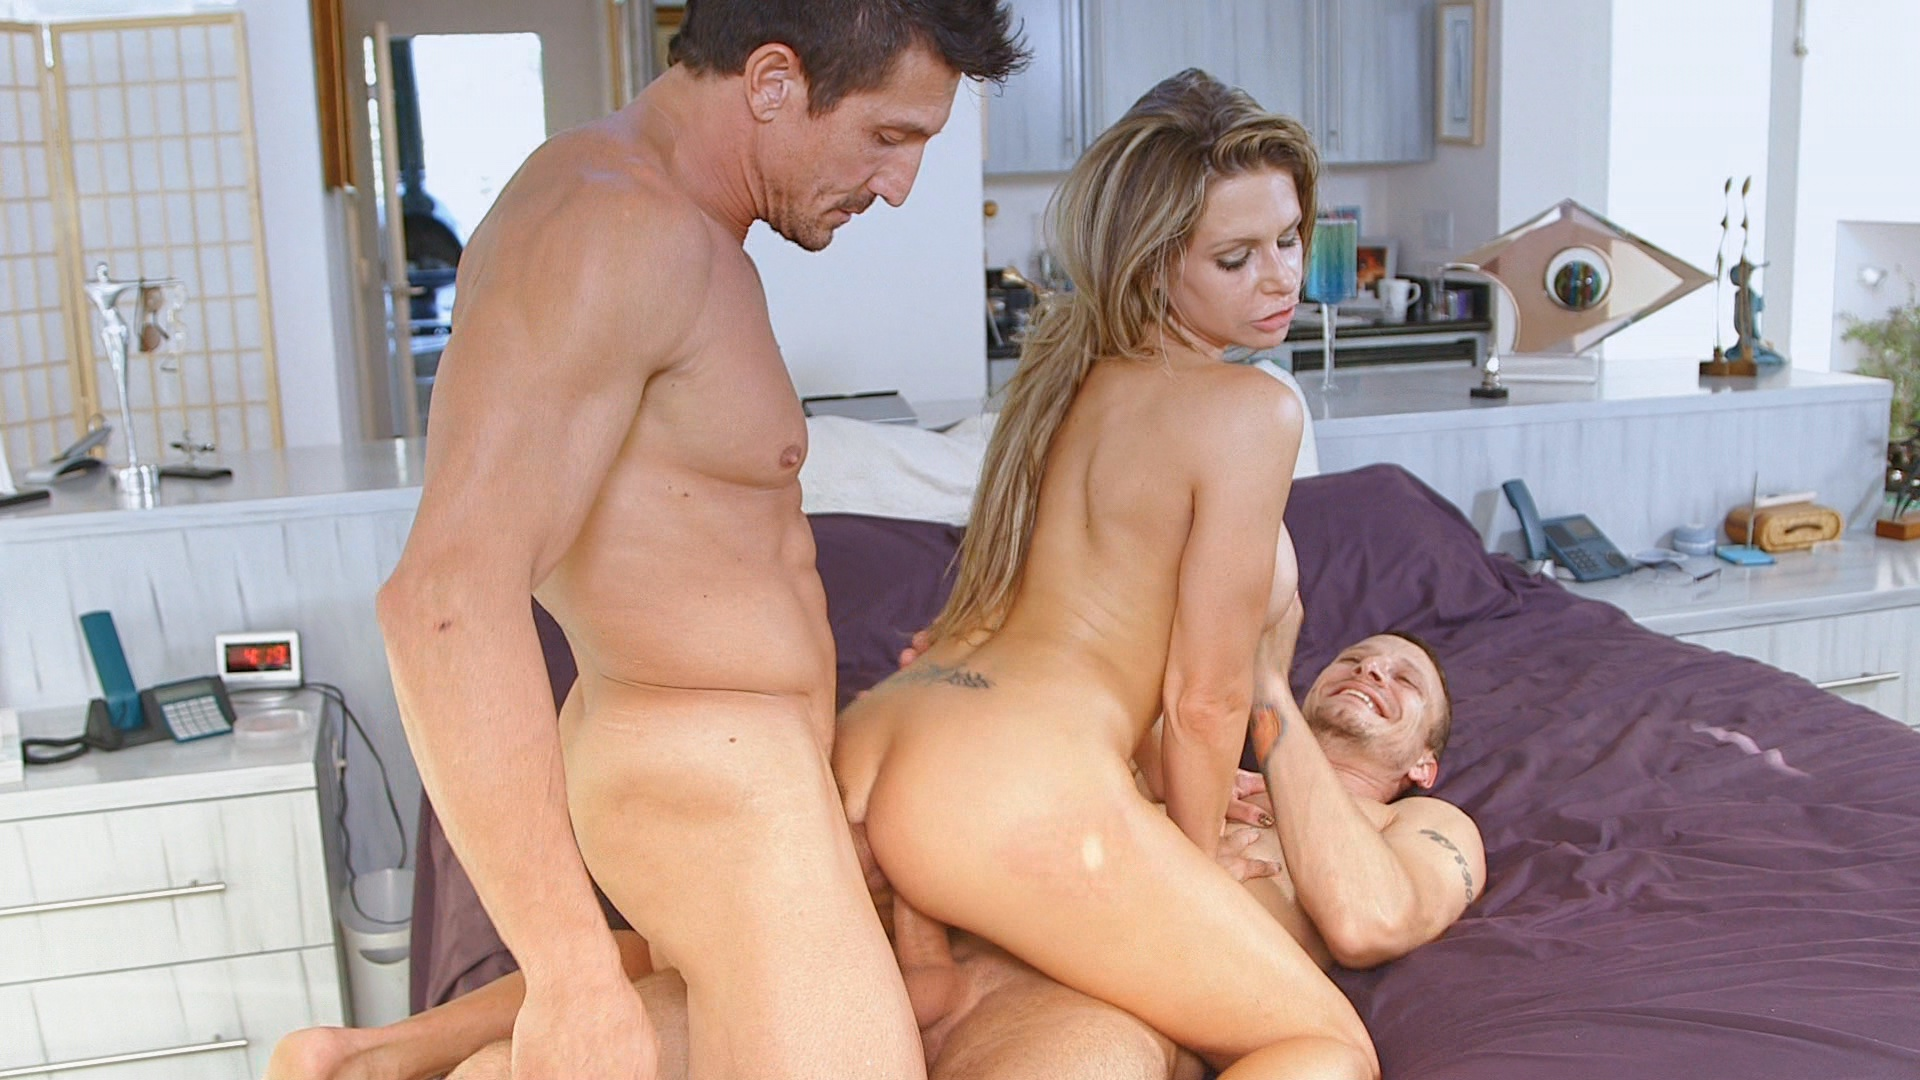 DP My Wife With Me 3 xvideos173176